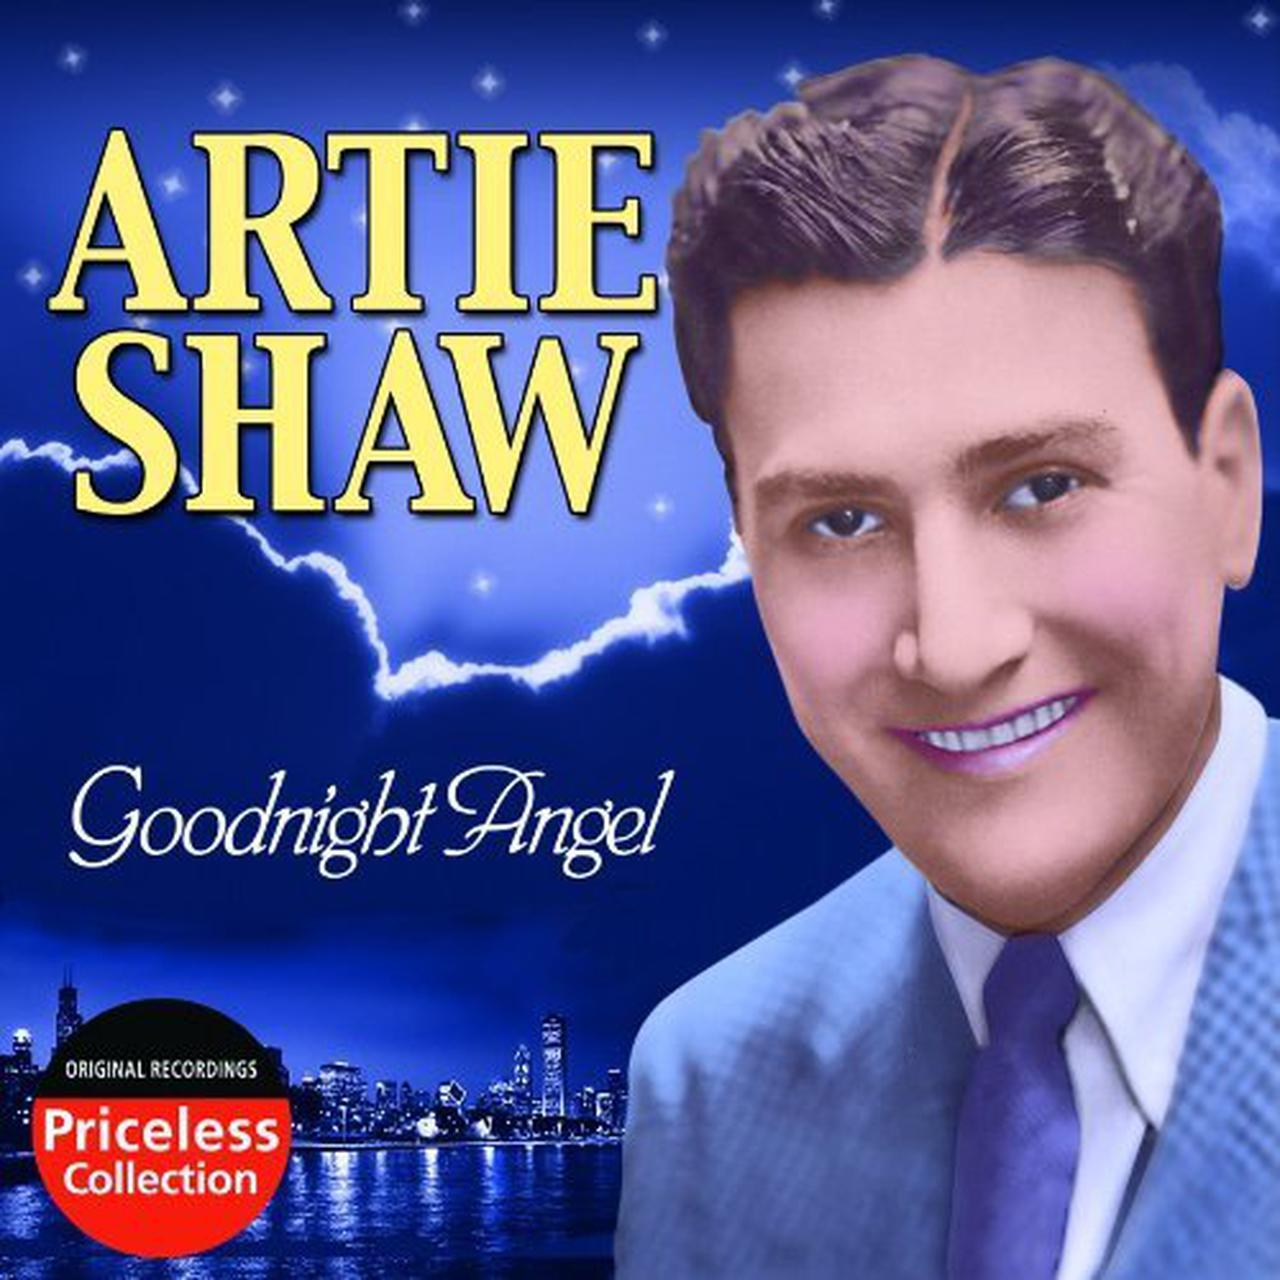 Artie Shaw Genre Artie Shaw Goodnight Angel Cd